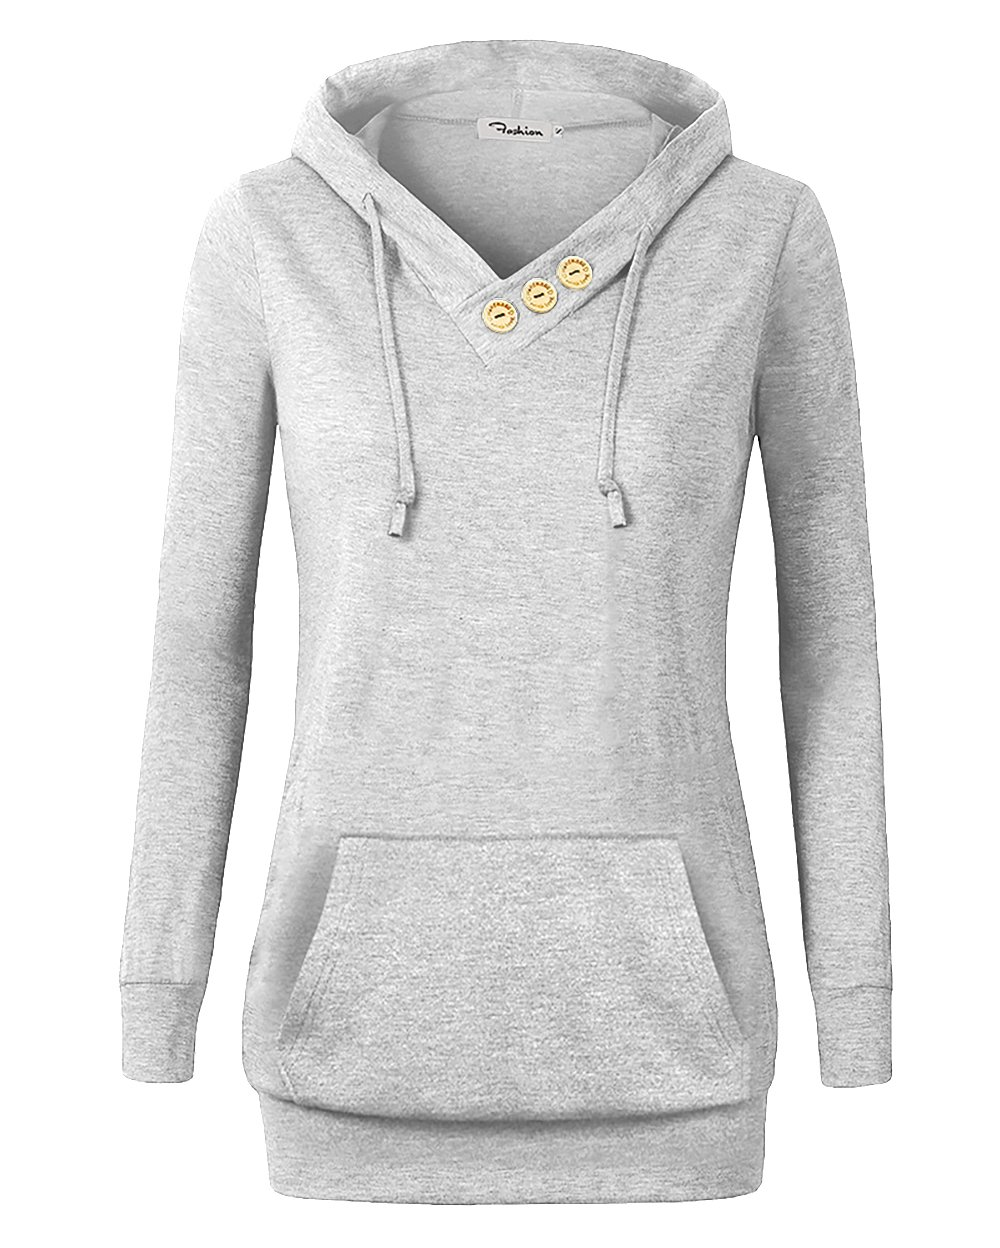 VOIANLIMO Women's Sweatshirts Long Sleeve Button V-Neck Pockets Pullover Hoodies Silver 3XL